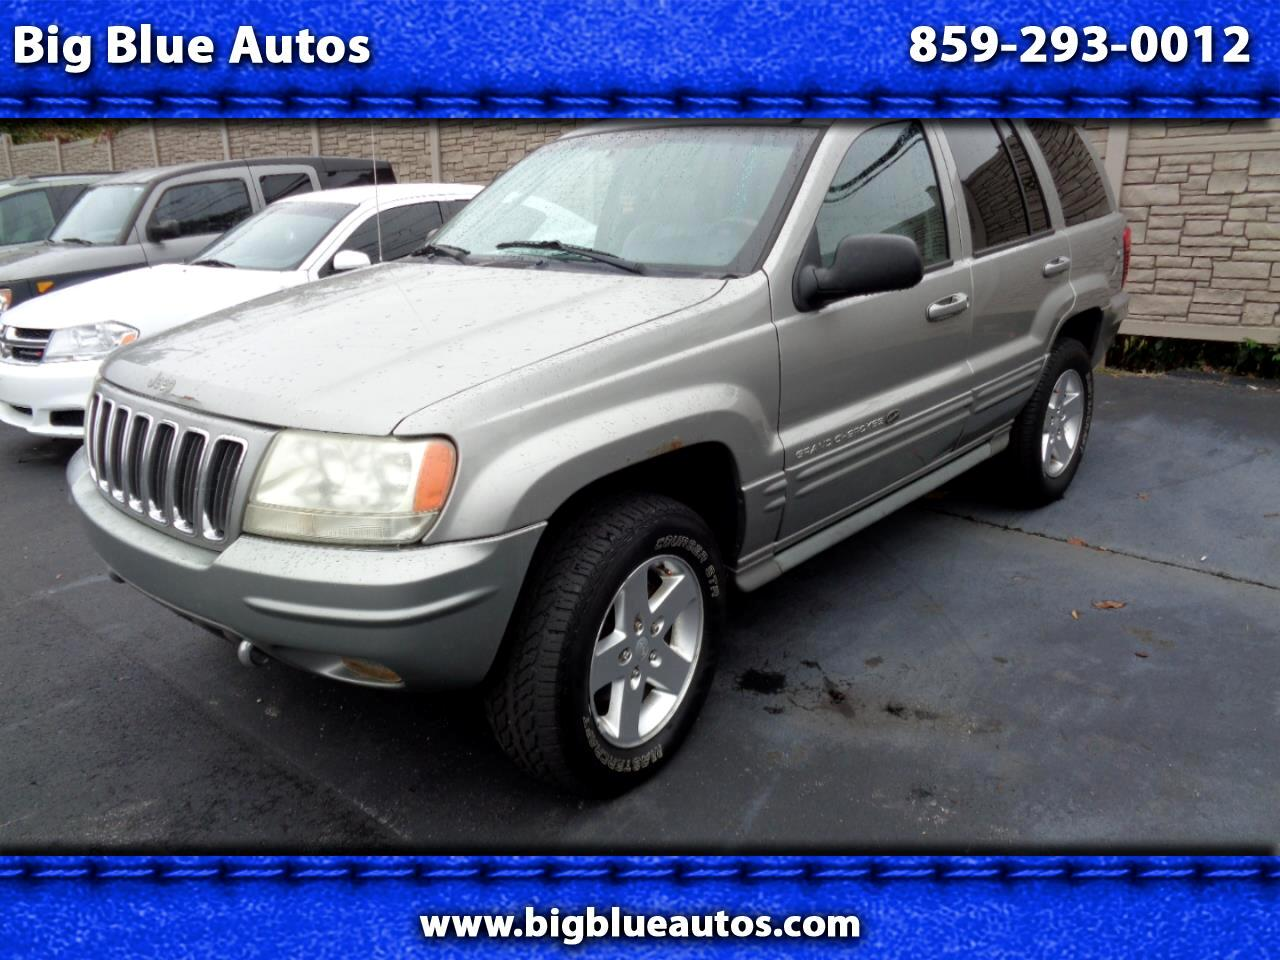 Jeep Grand Cherokee 4dr Overland 4WD 2002